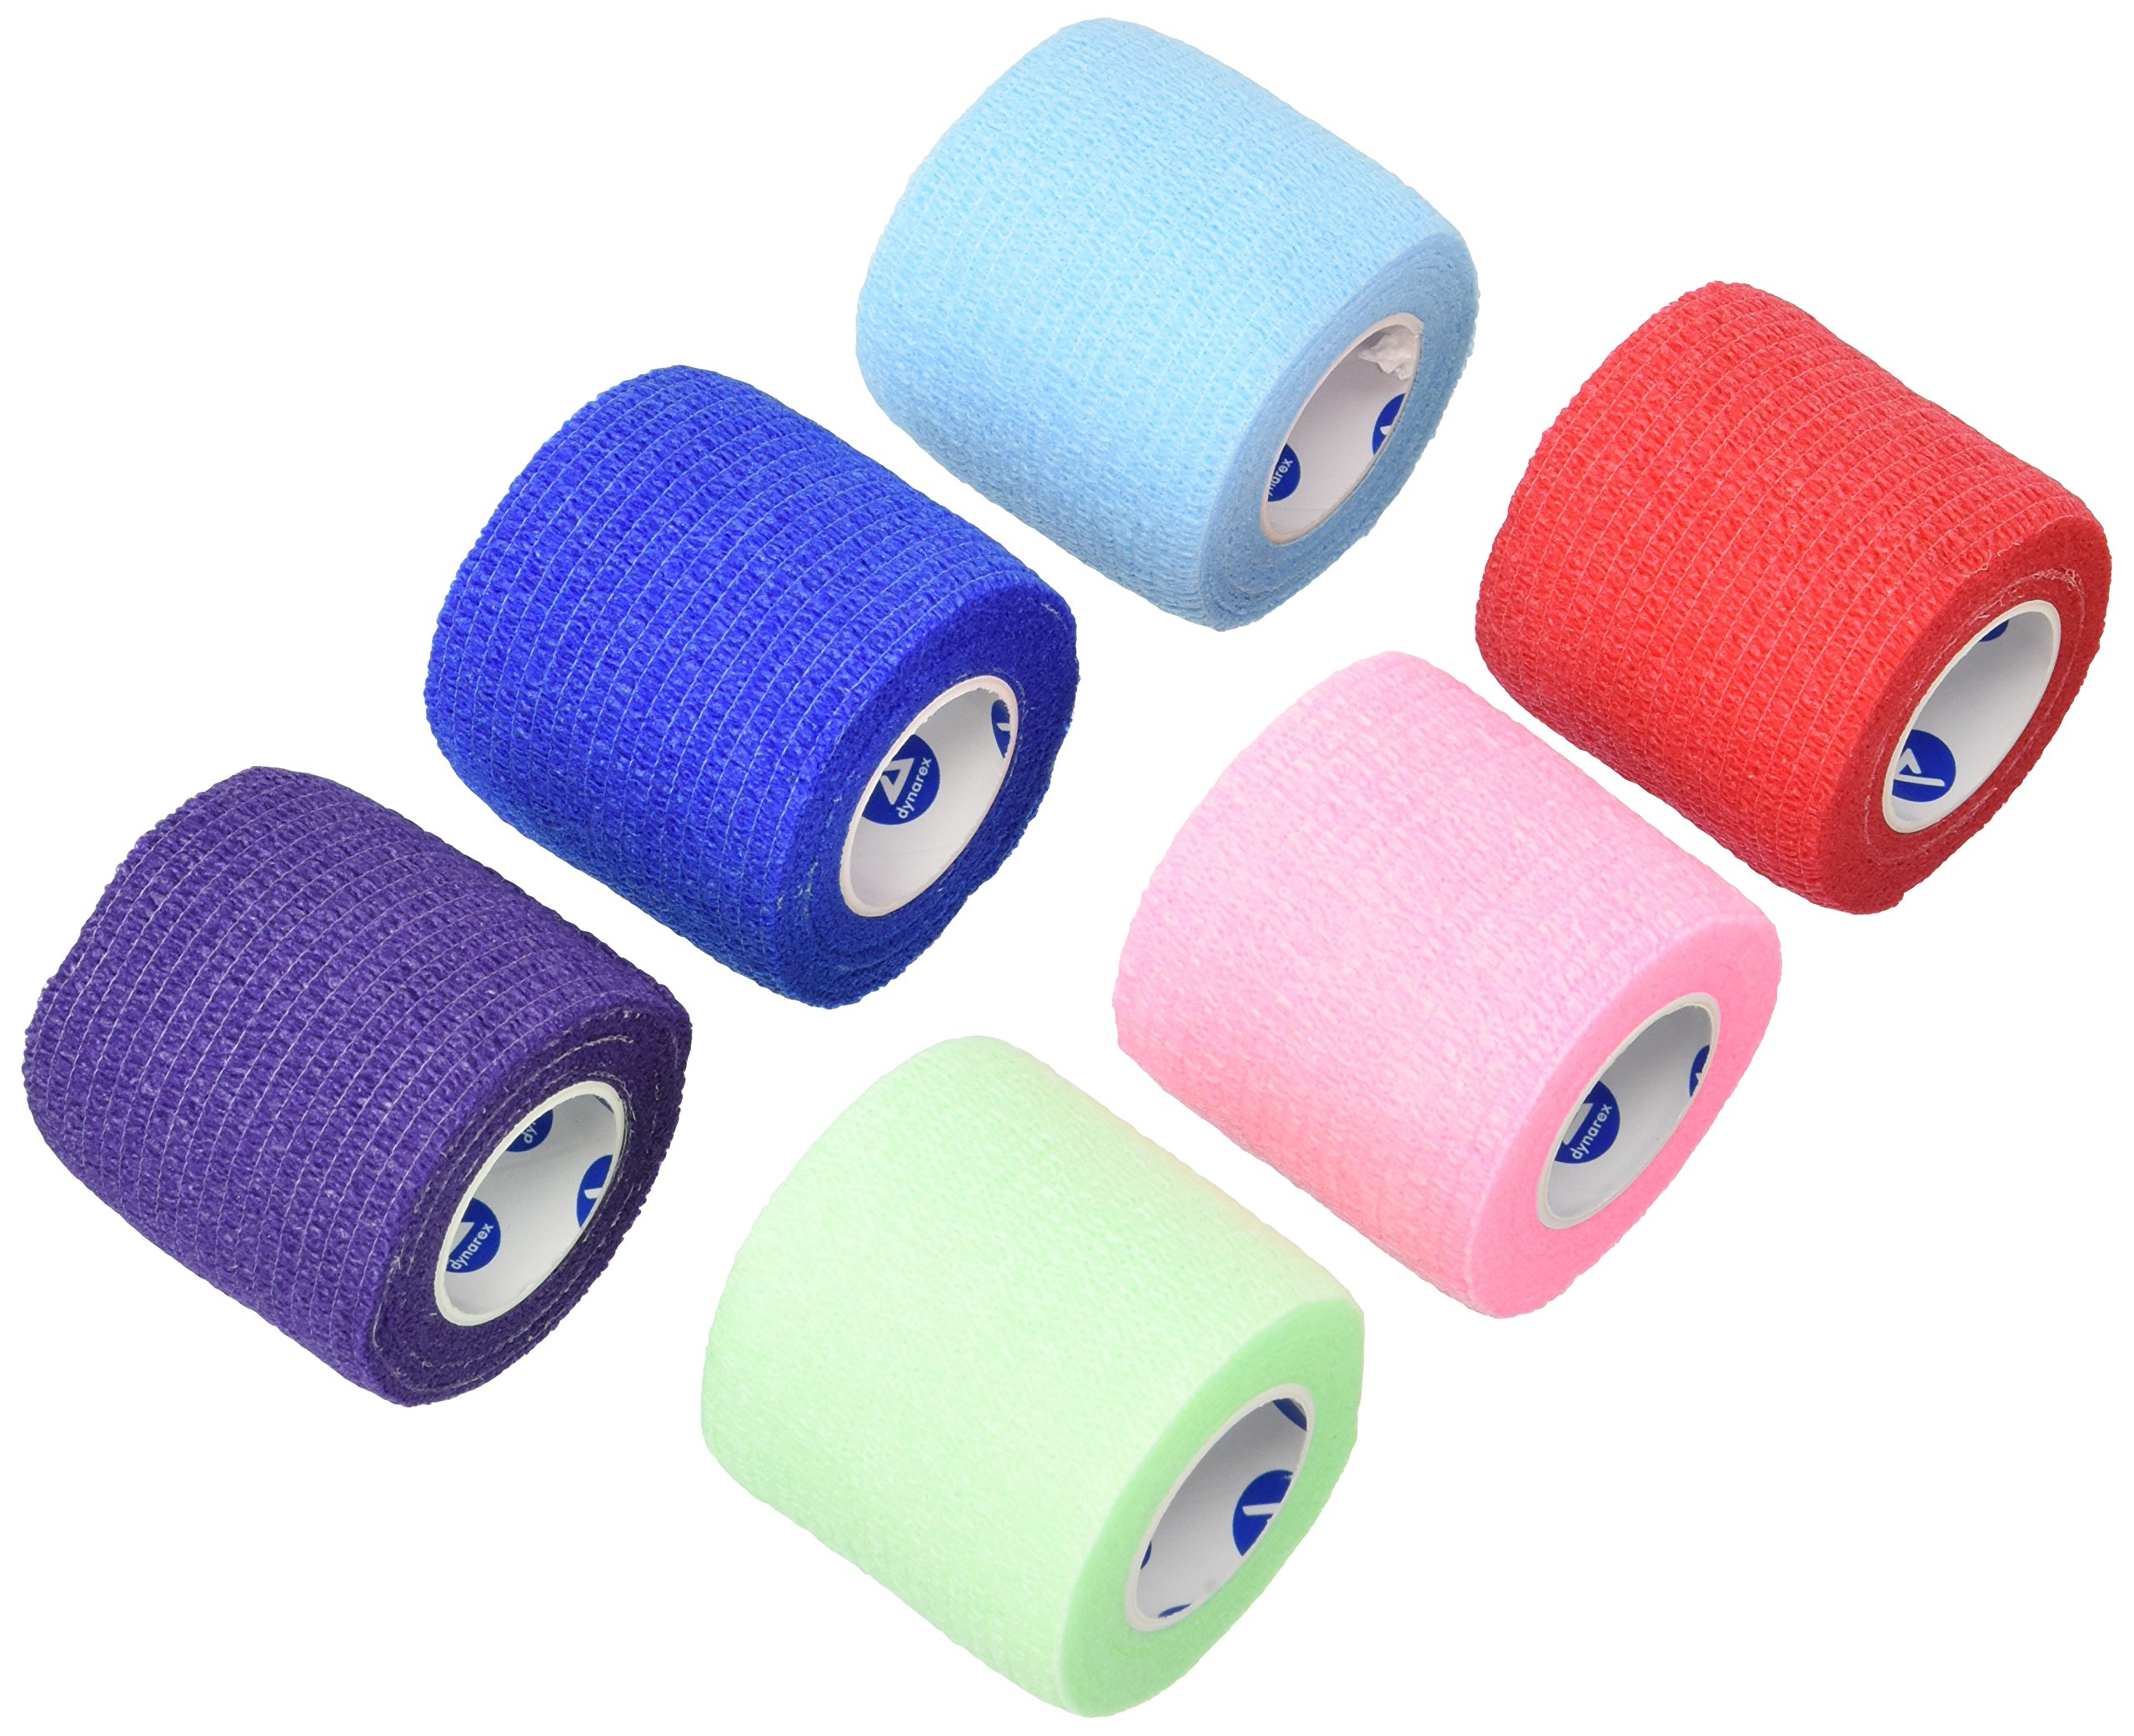 Dynarex Sensi Wrap, Rainbow Color, 2 Inches X 5 Yards, 36 Count